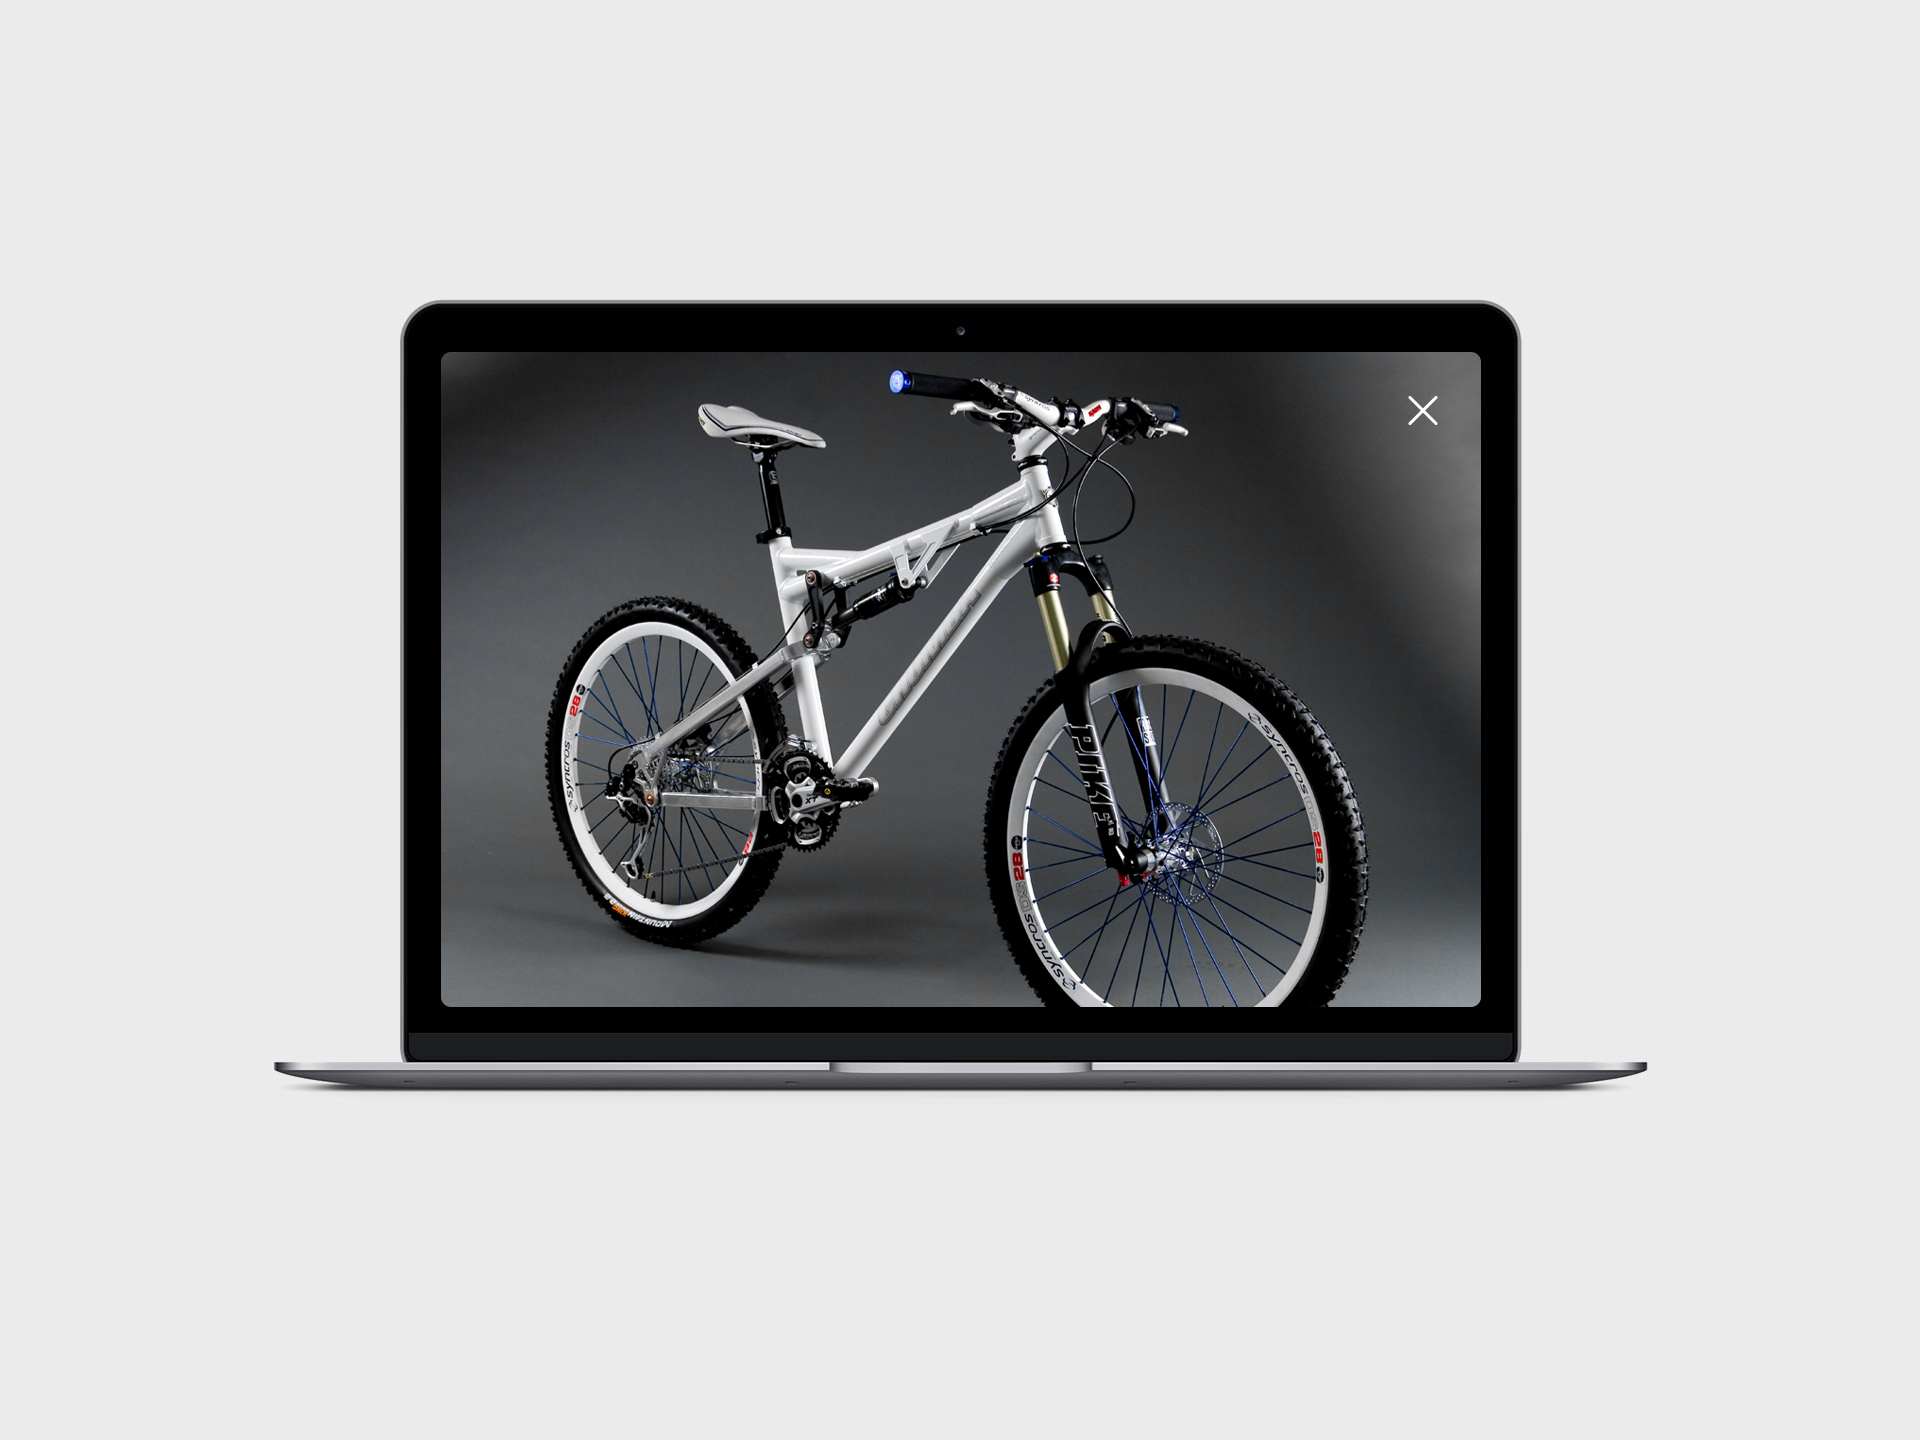 Bike-in-laptop.jpg